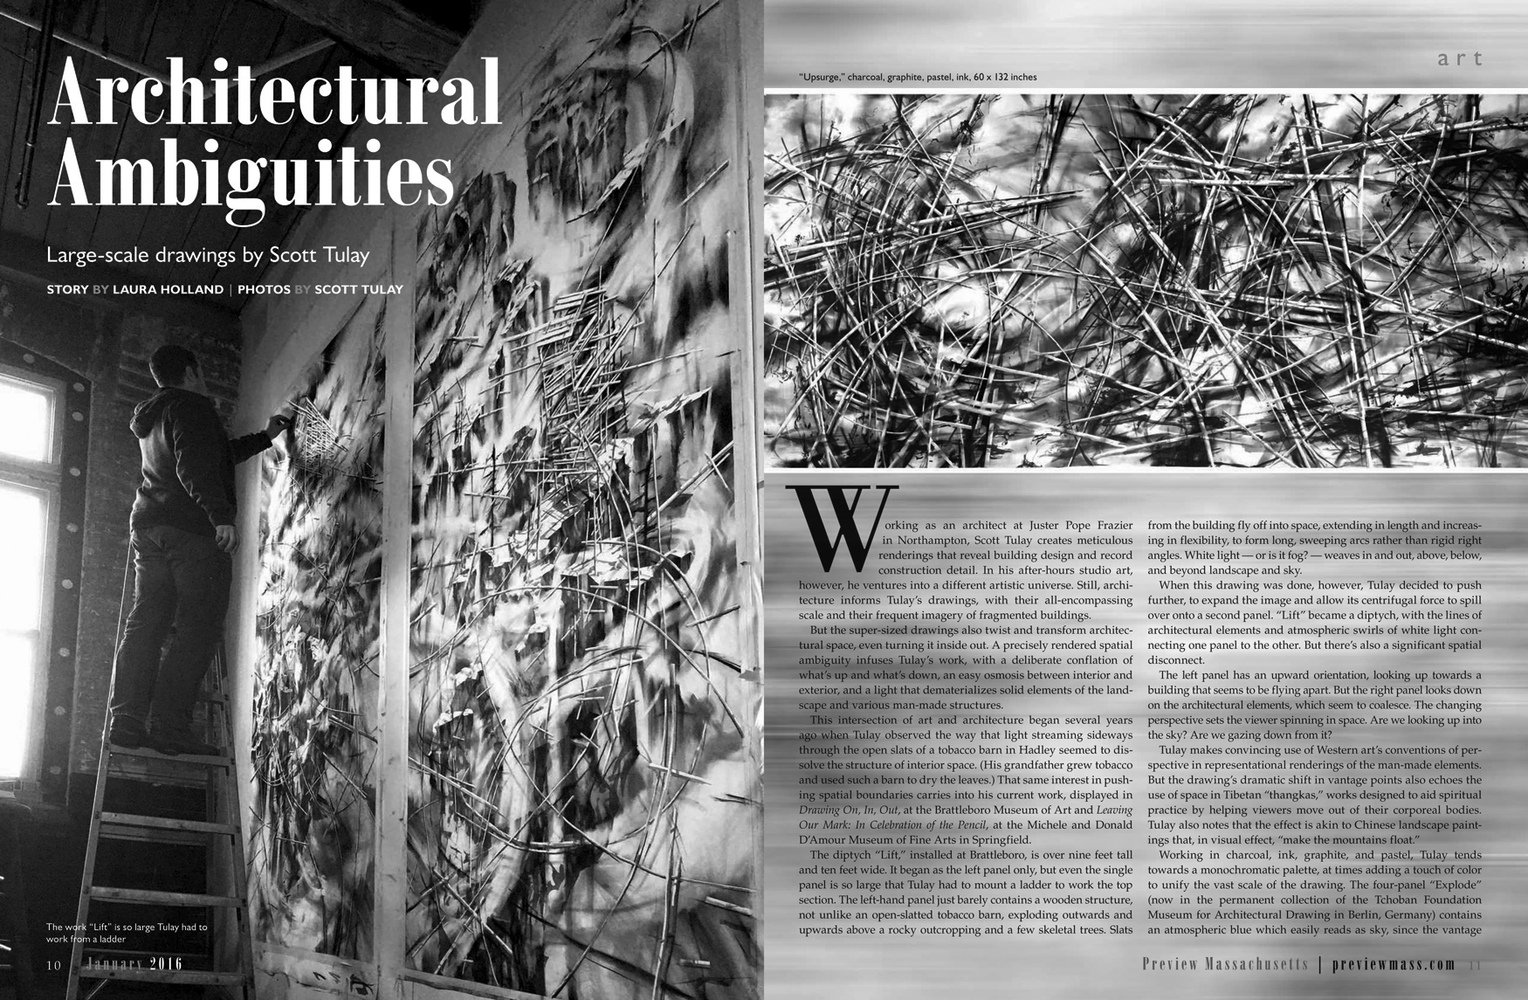 recent drawings and openings Preview Magazine feature